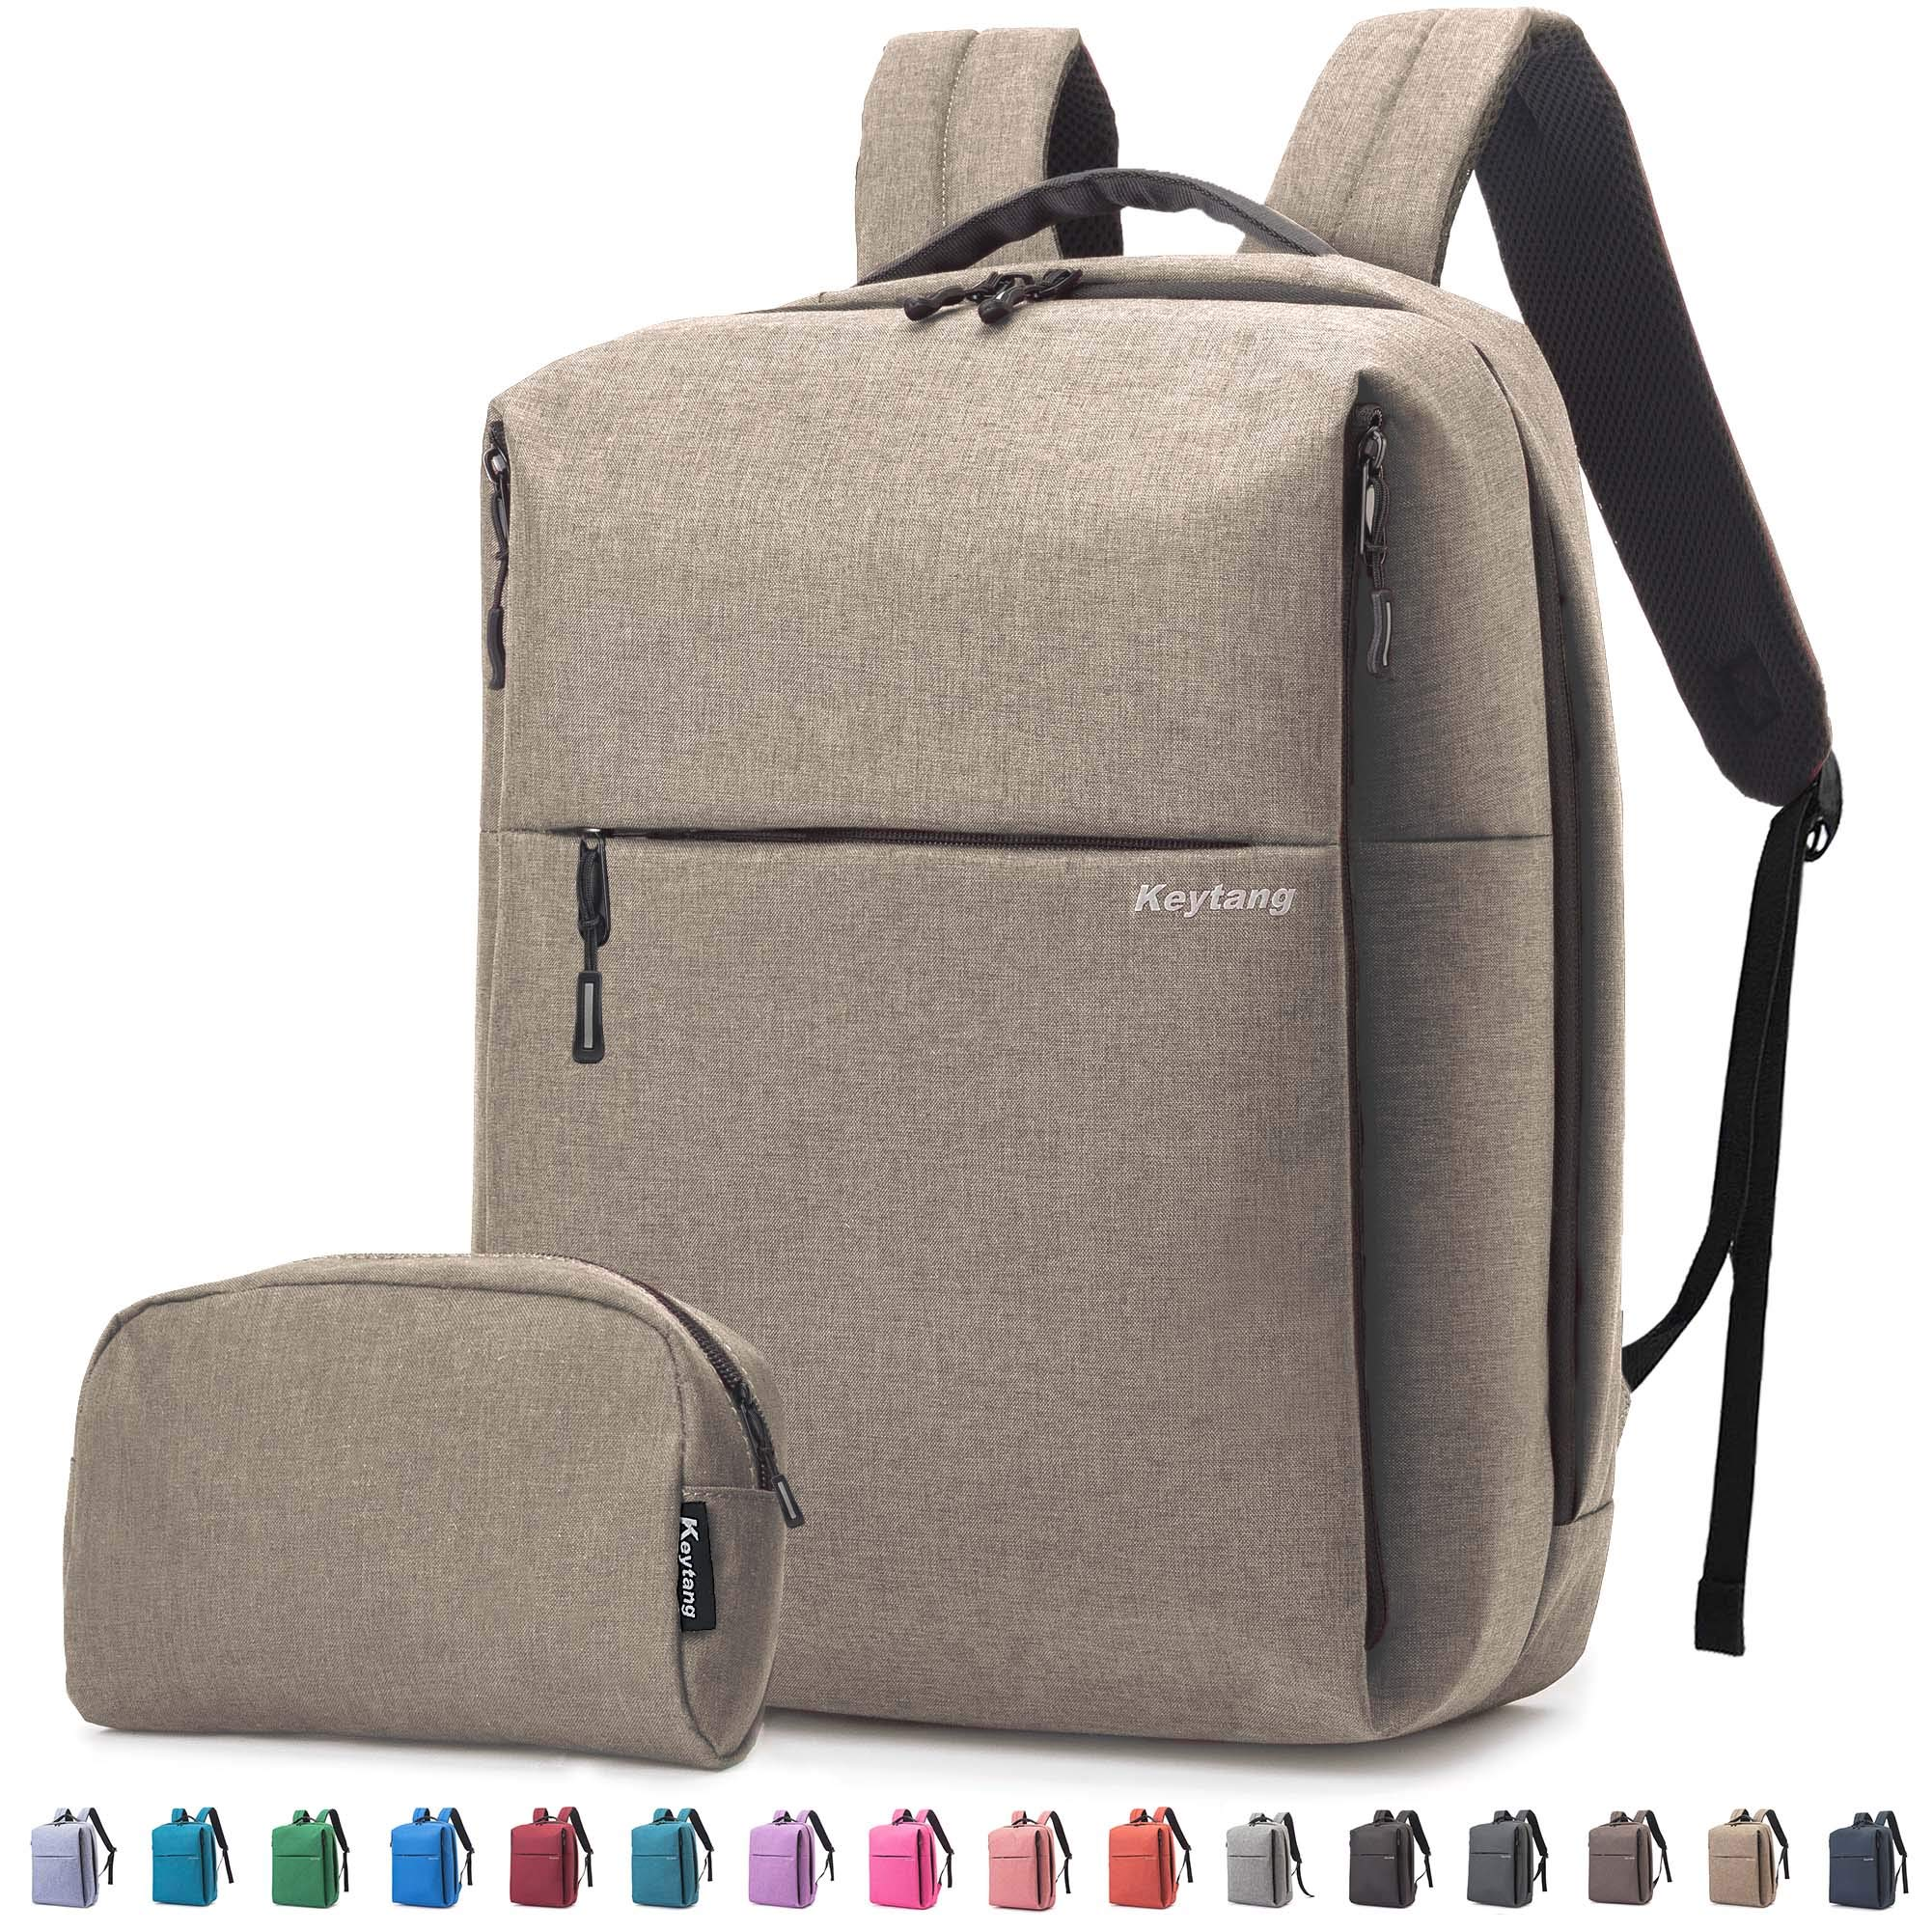 Travel Laptop Business Backpack, Anti Theft Water Resistant School Computer Bagpack Gifts for Men & Women,Fits 15.6 Inch Notebook with USB Charging Port Bonus a Small pencil Case, Earth color